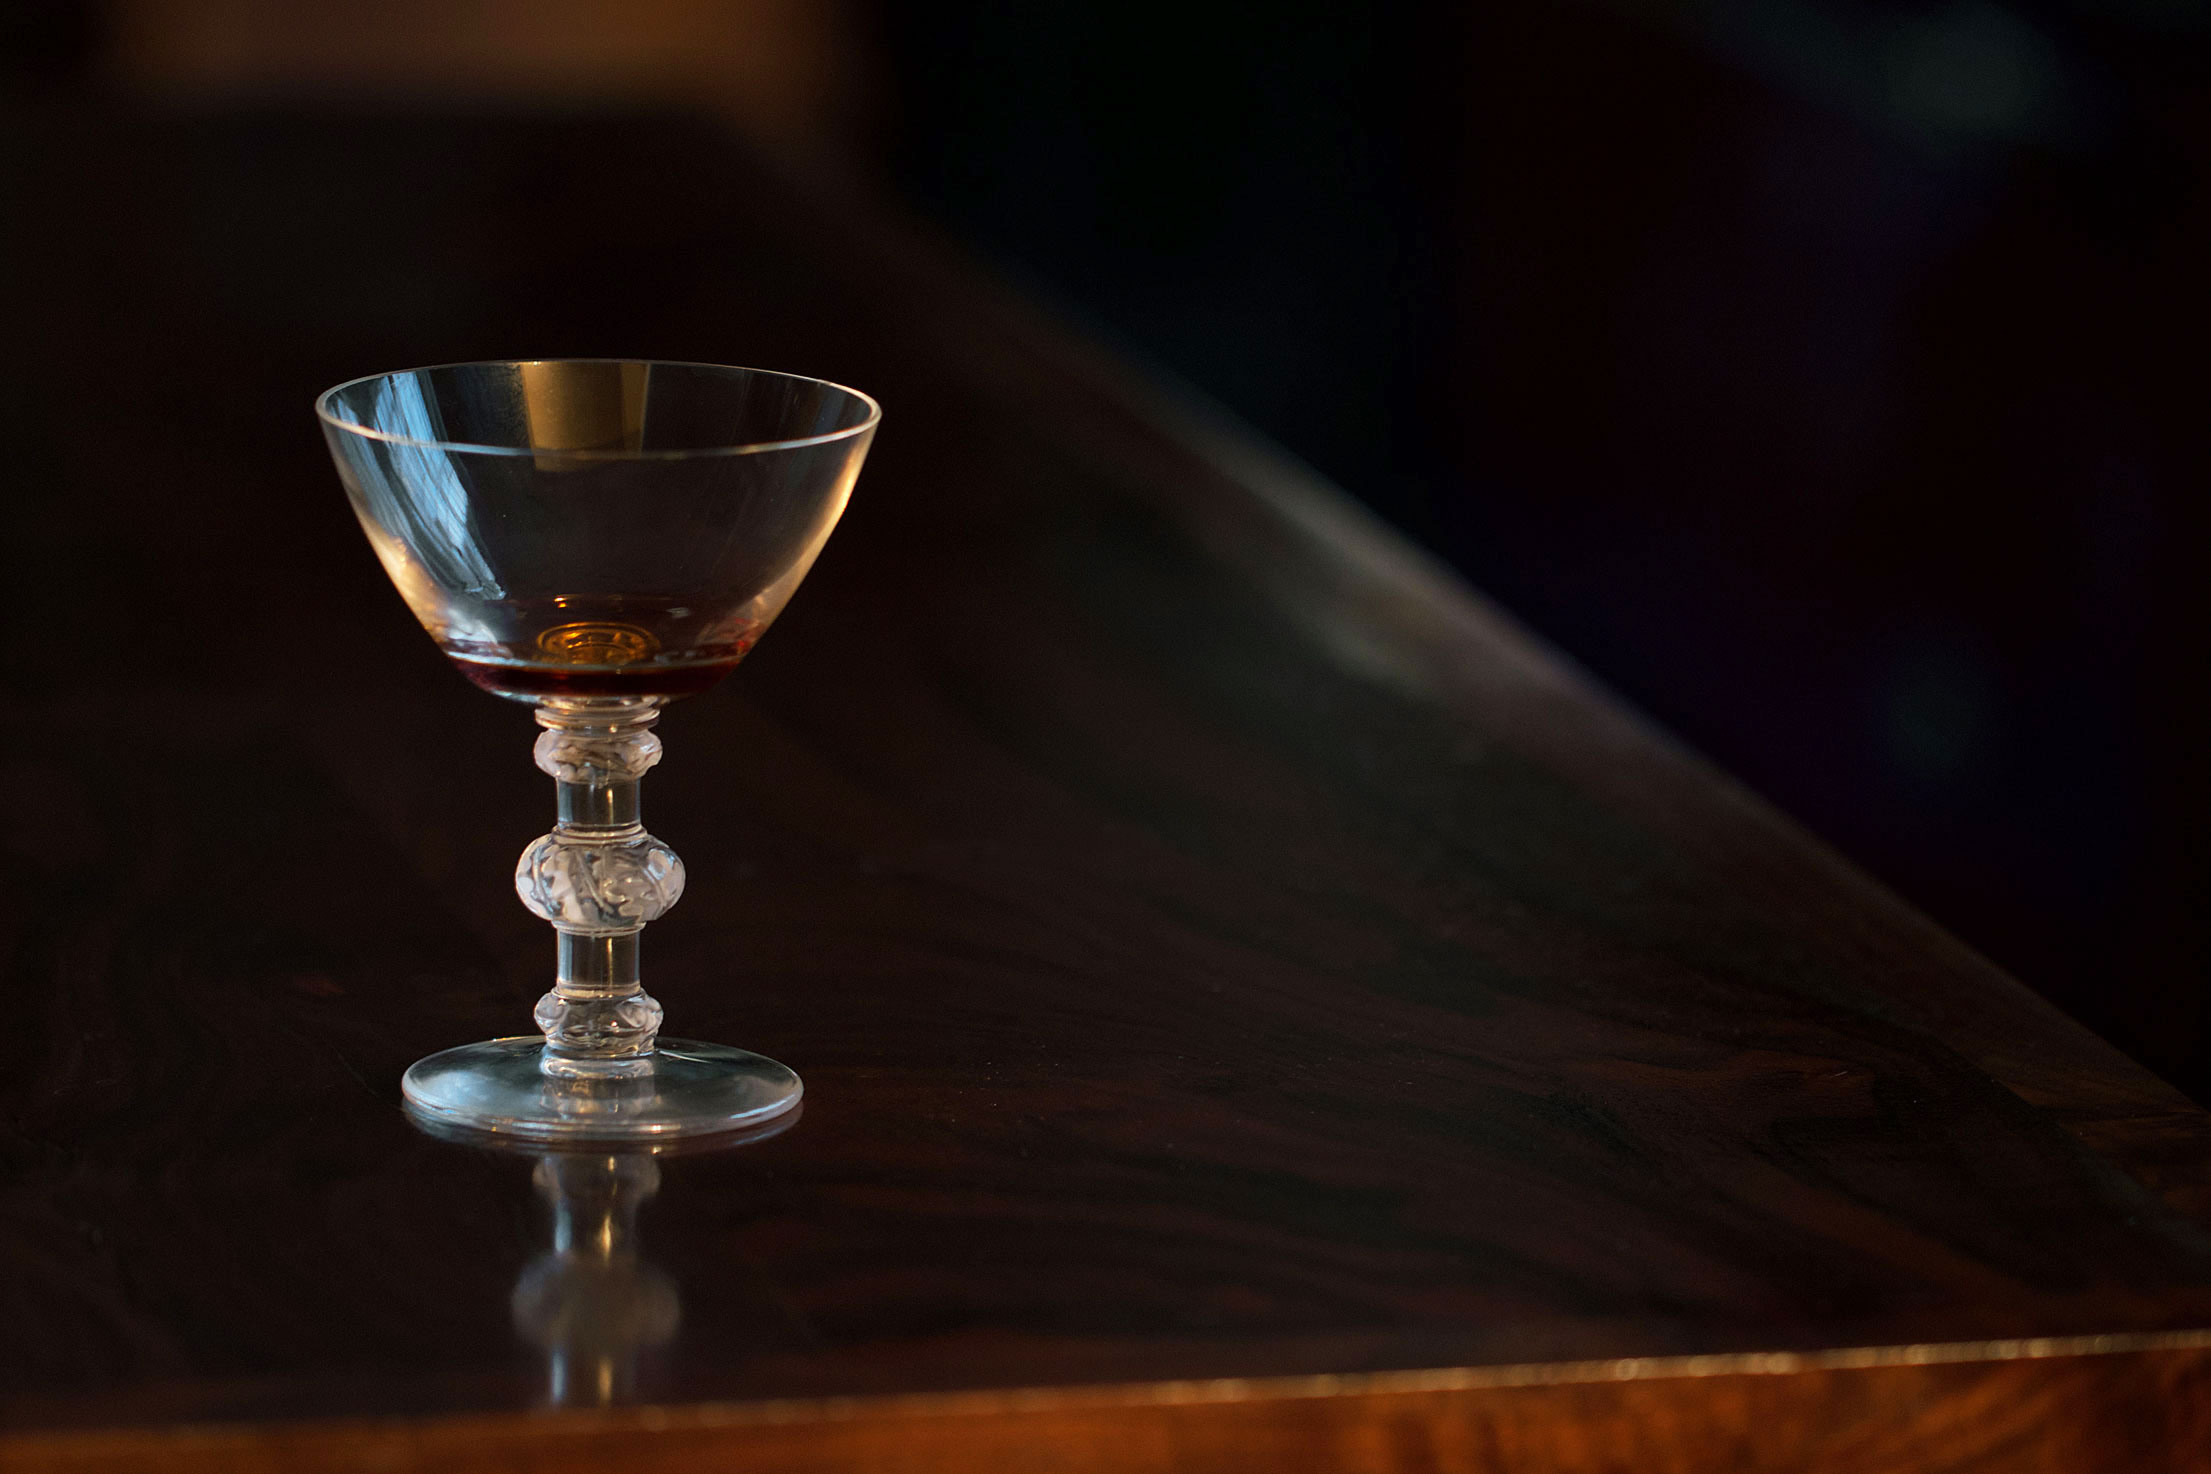 The Fourth Regiment Cocktail